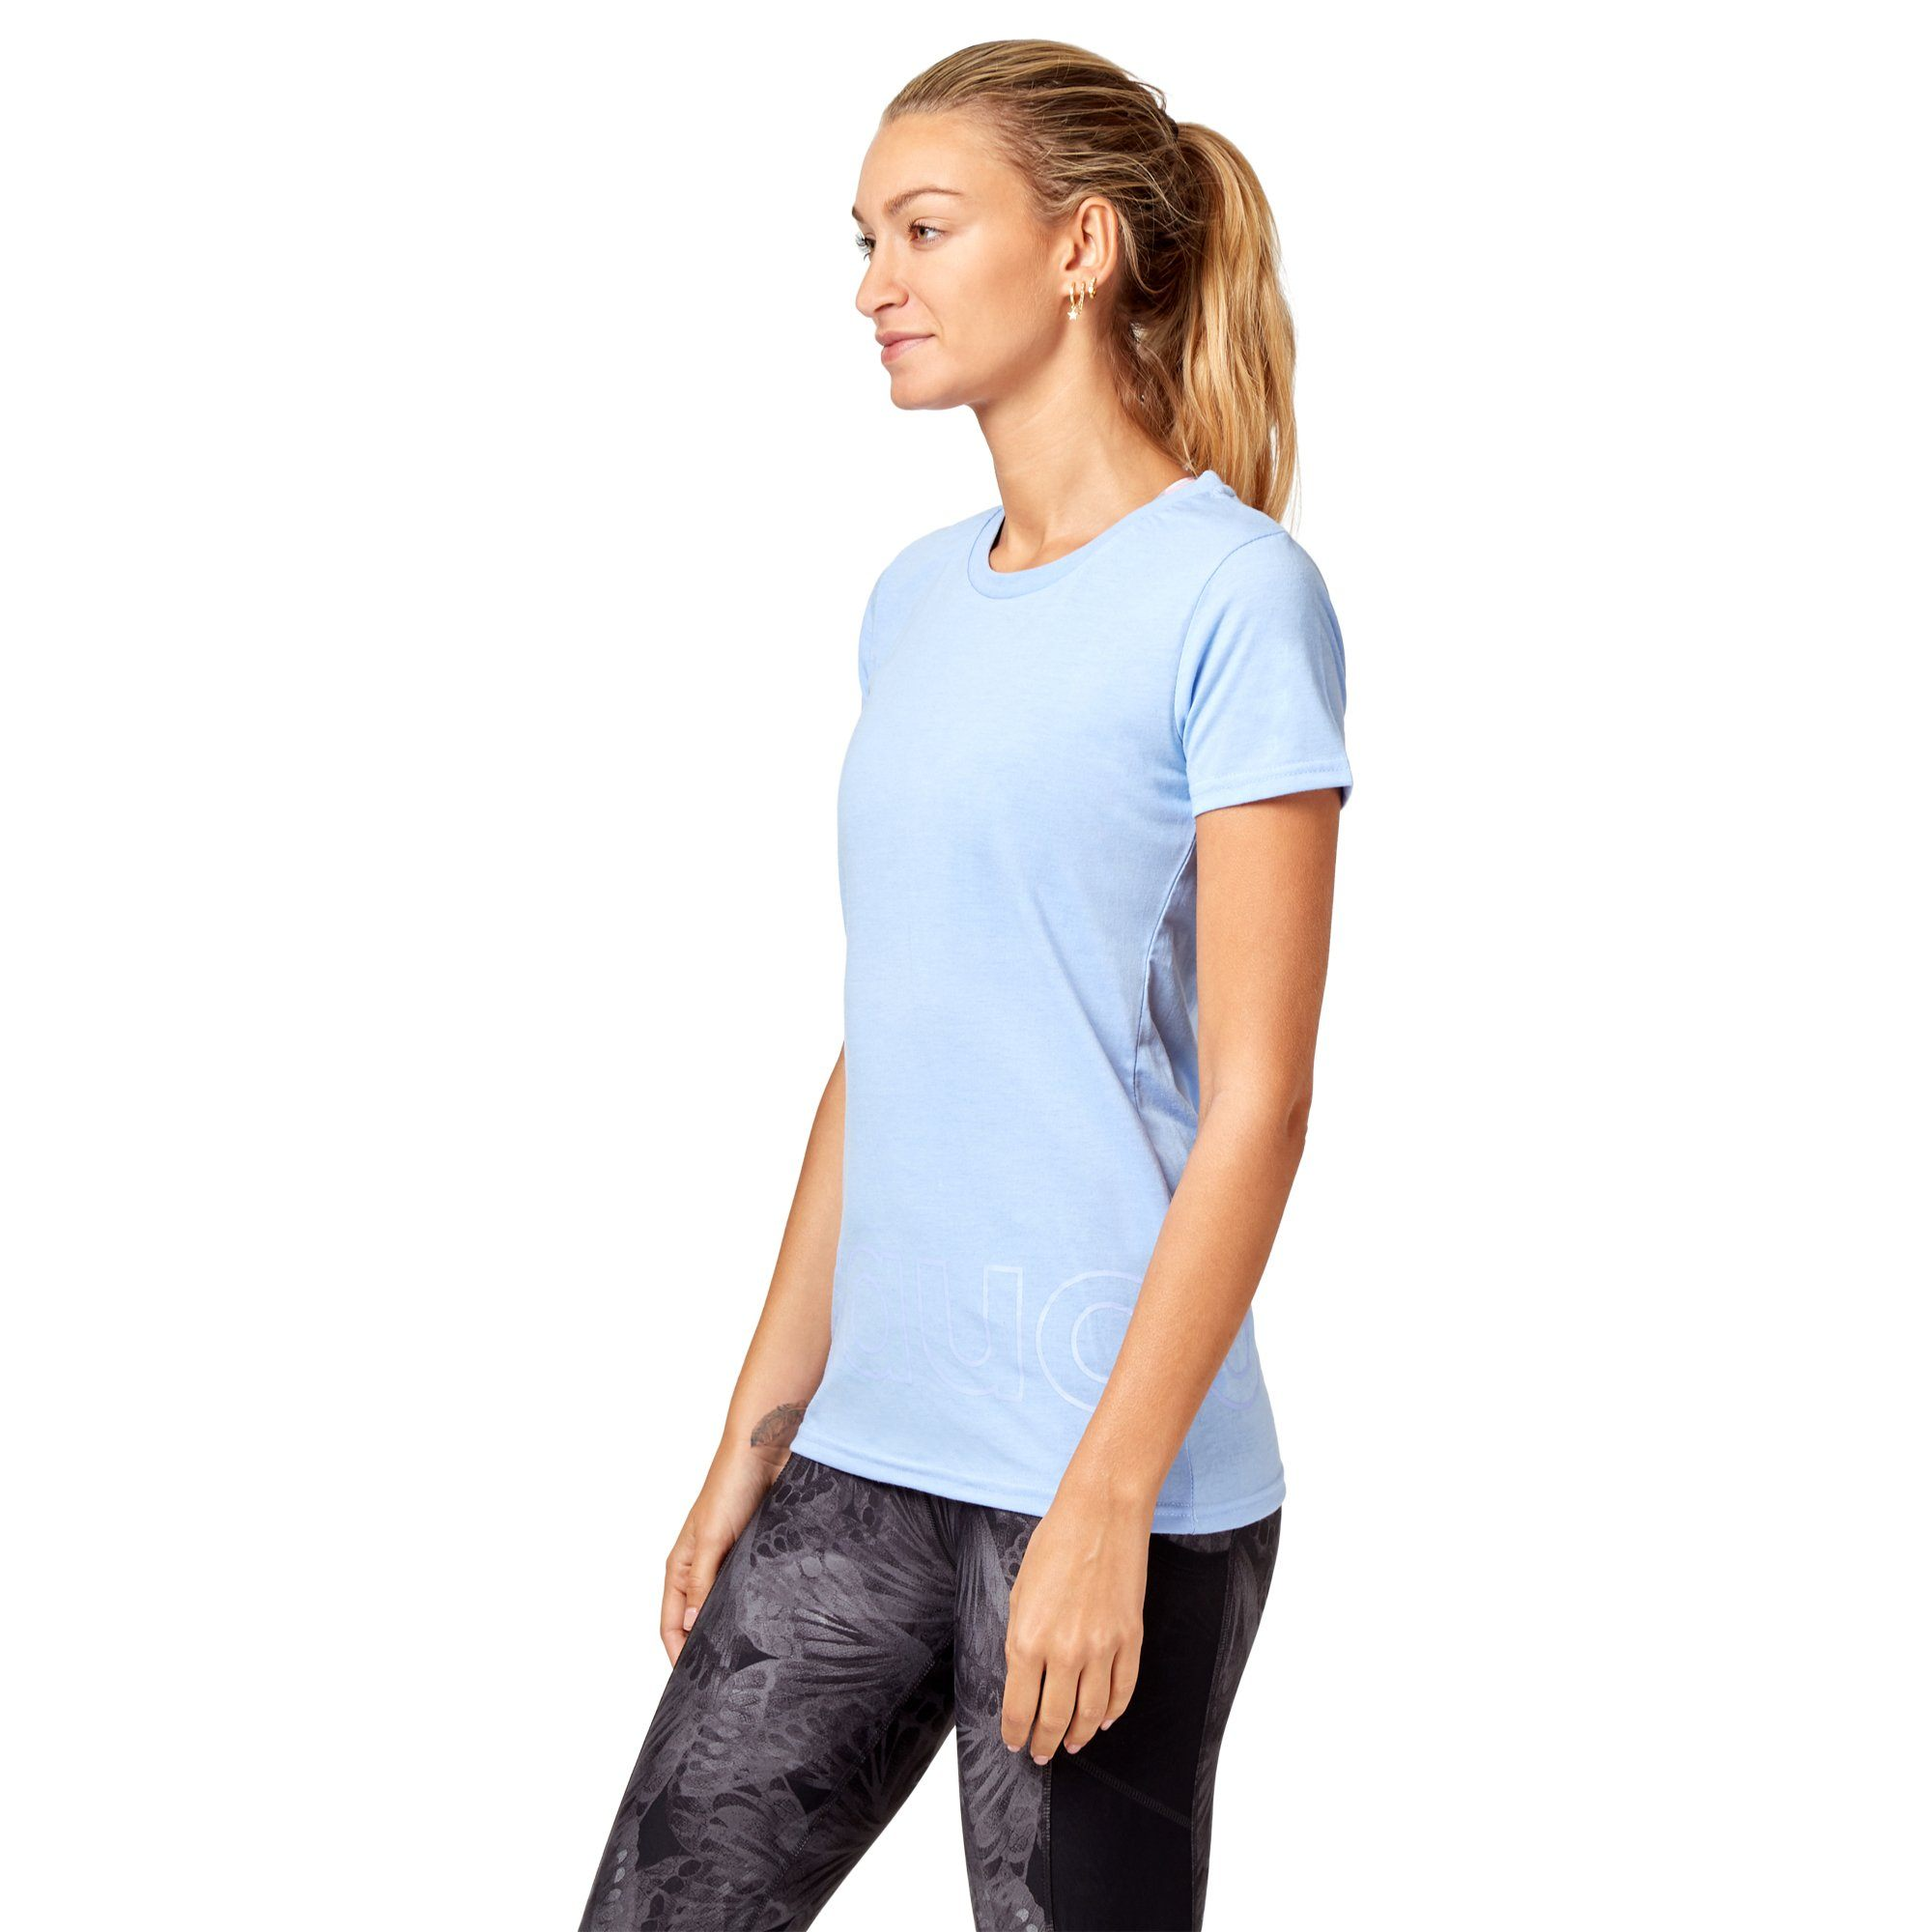 Saucony Band Logo Tee - Serenity Apparel Saucony